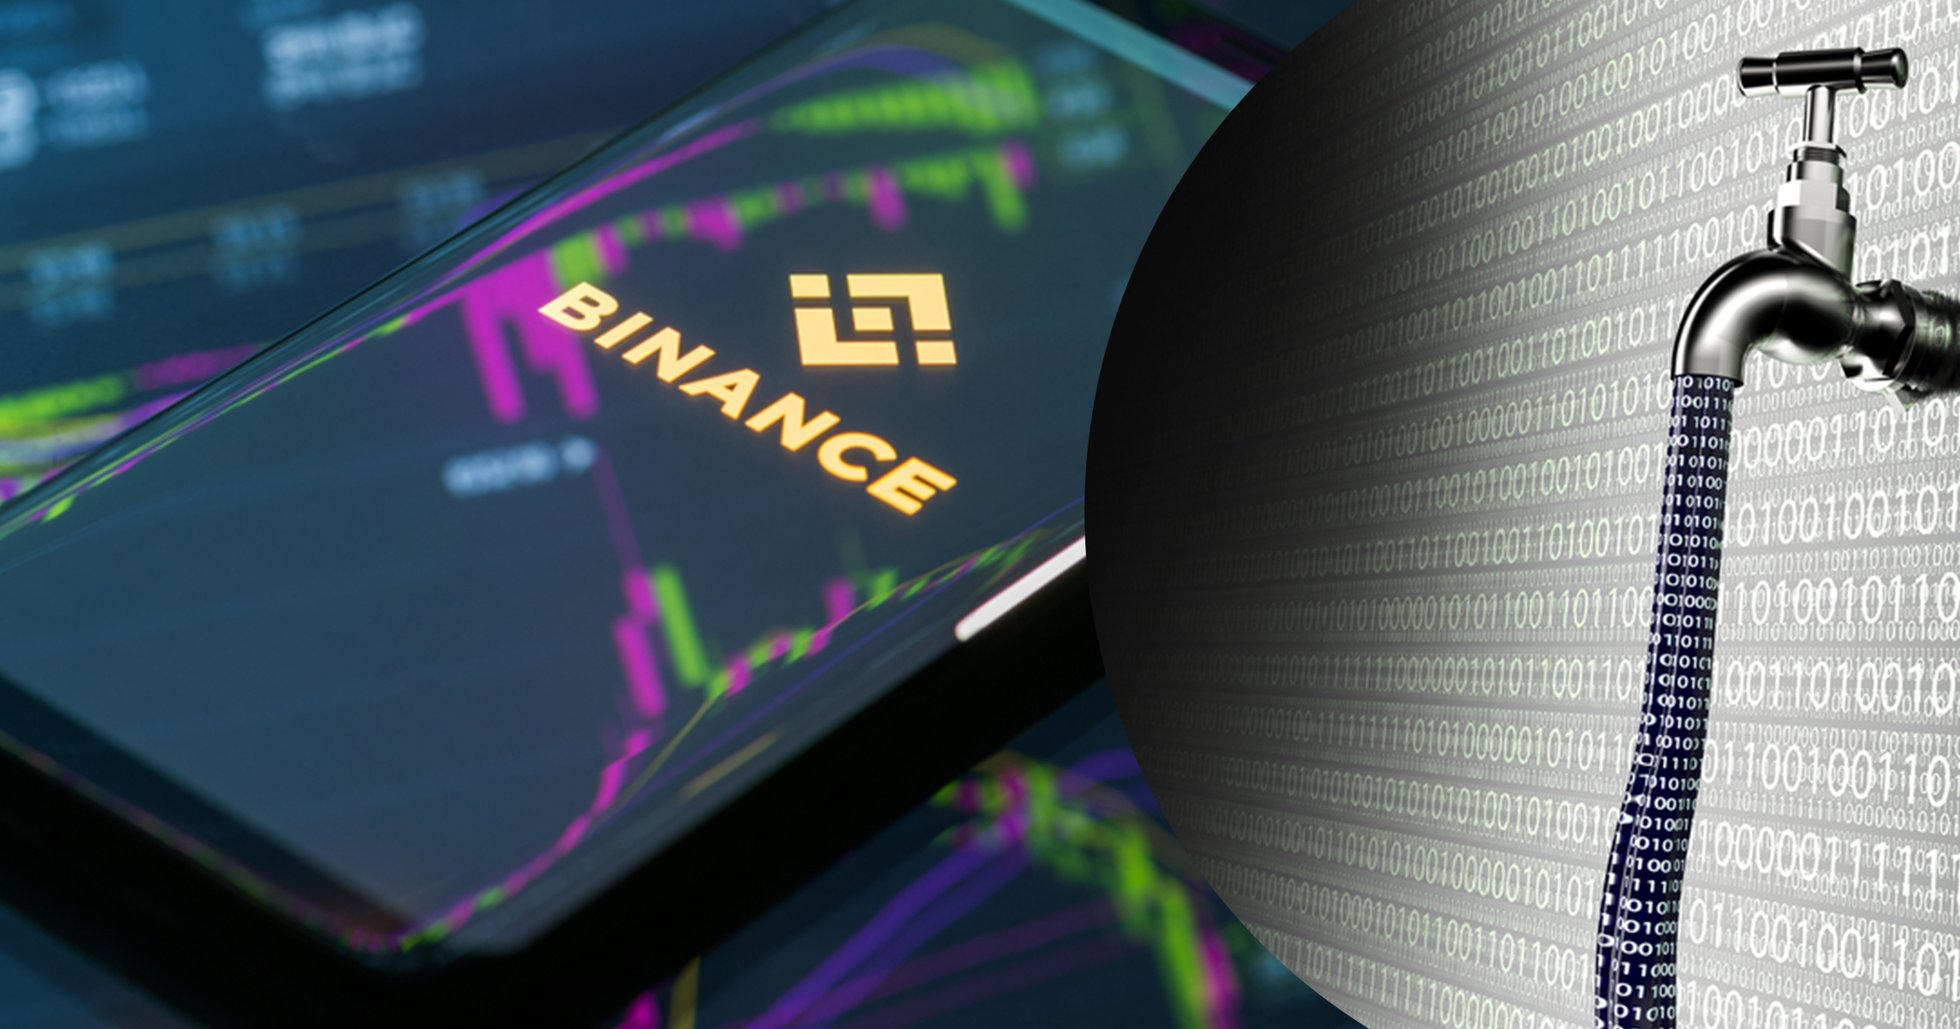 Giant exchange Binance hit with suspected leakage of user data